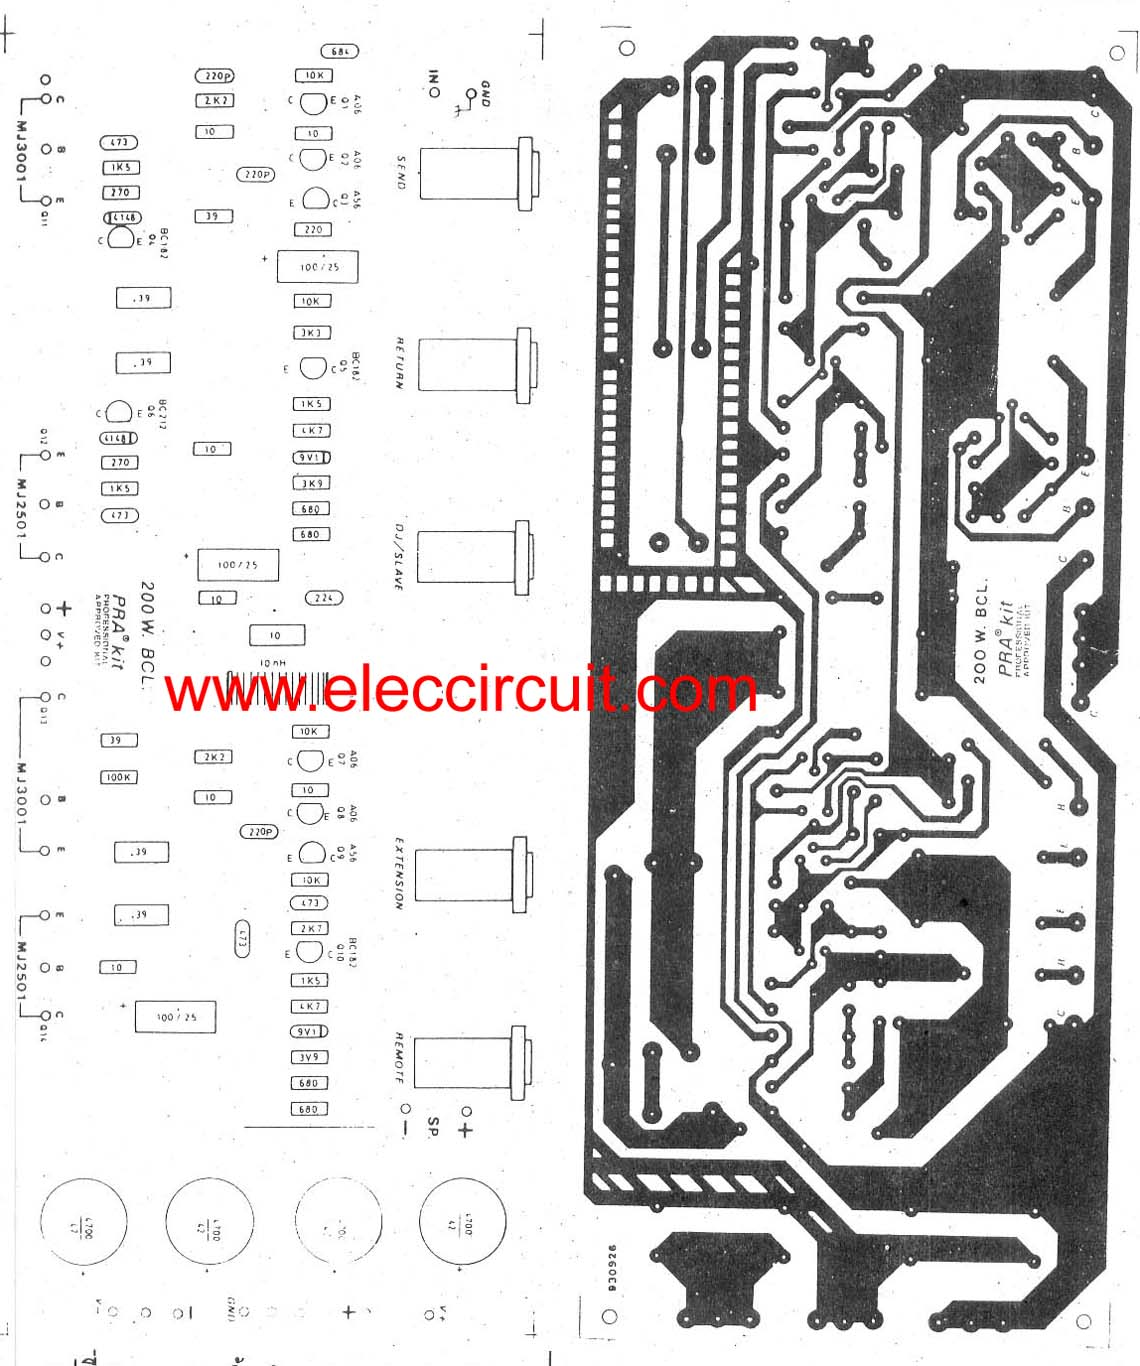 pcb of bass guitar super bridge amplifier 200 watt 200w guitar amplifier circuit diagram with pcb layout guitar amp wiring diagram at nearapp.co